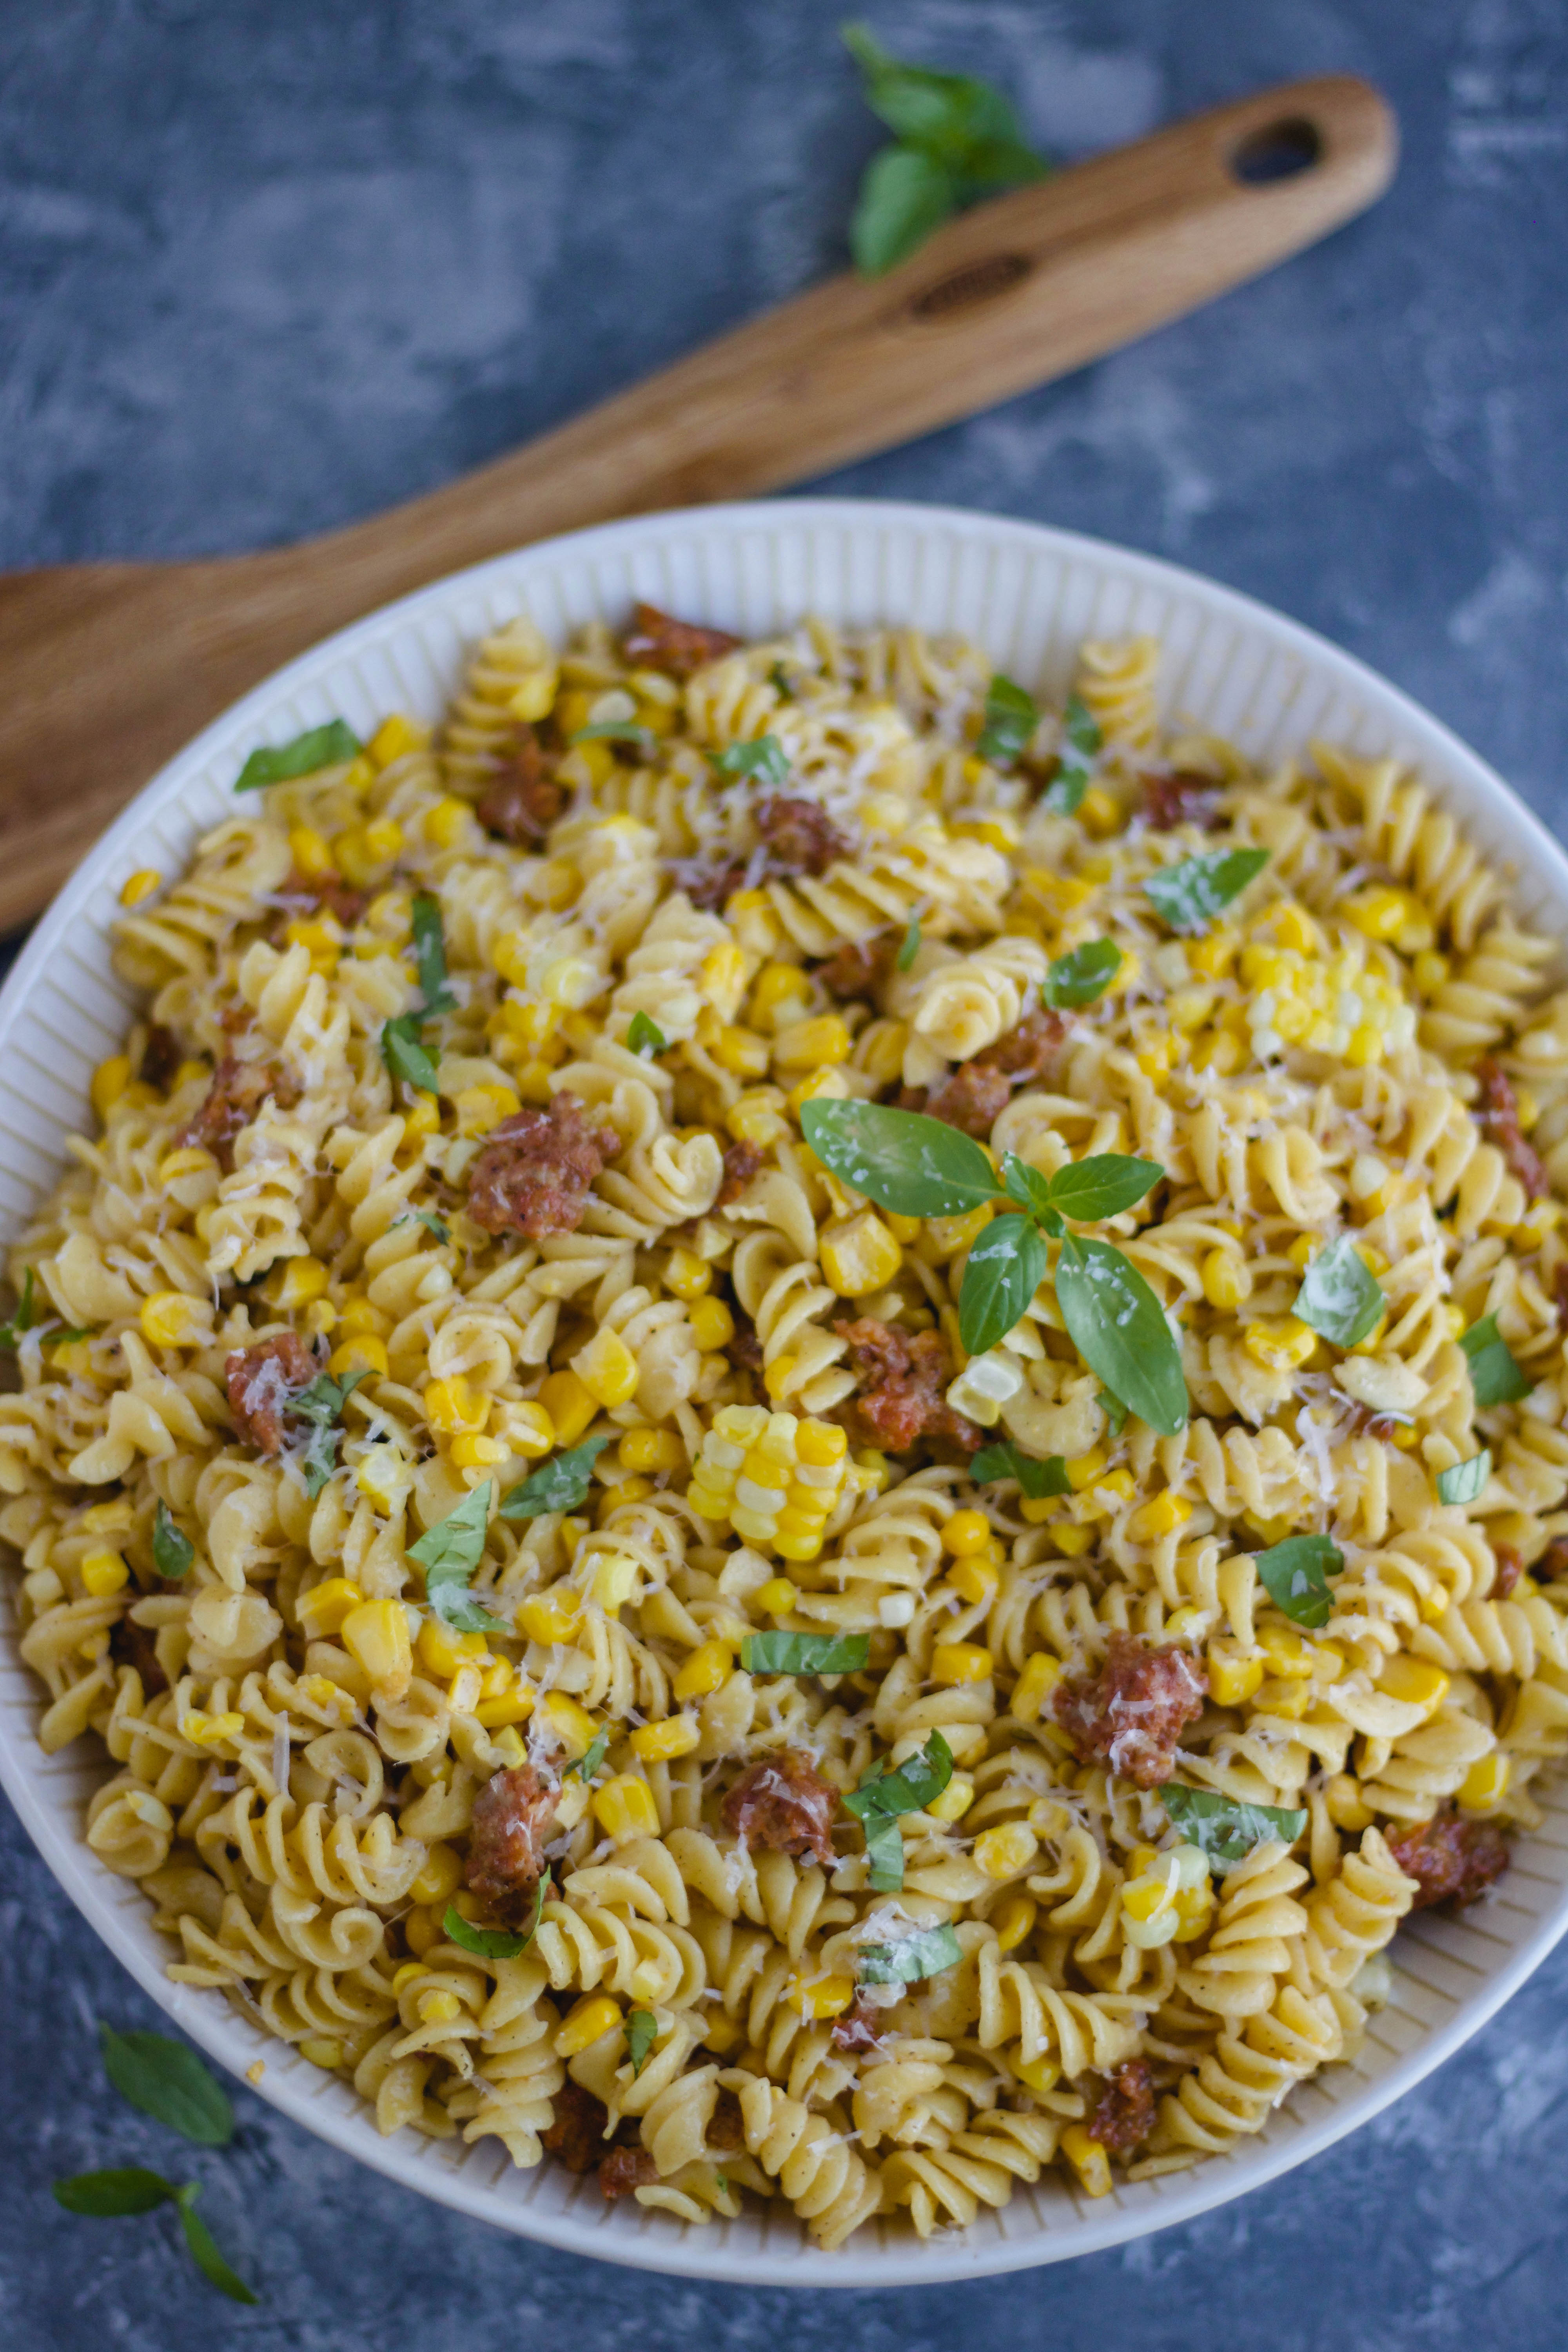 Creamy Rotini Pasta with Sweet Corn and Sausage! Made with simple ingredients like in-season sweet corn, flavorful sausage and fresh basil. This dish is an easy weeknight meal that the whole family will love. It\'s simple and quick and comes together in under 30 minutes.